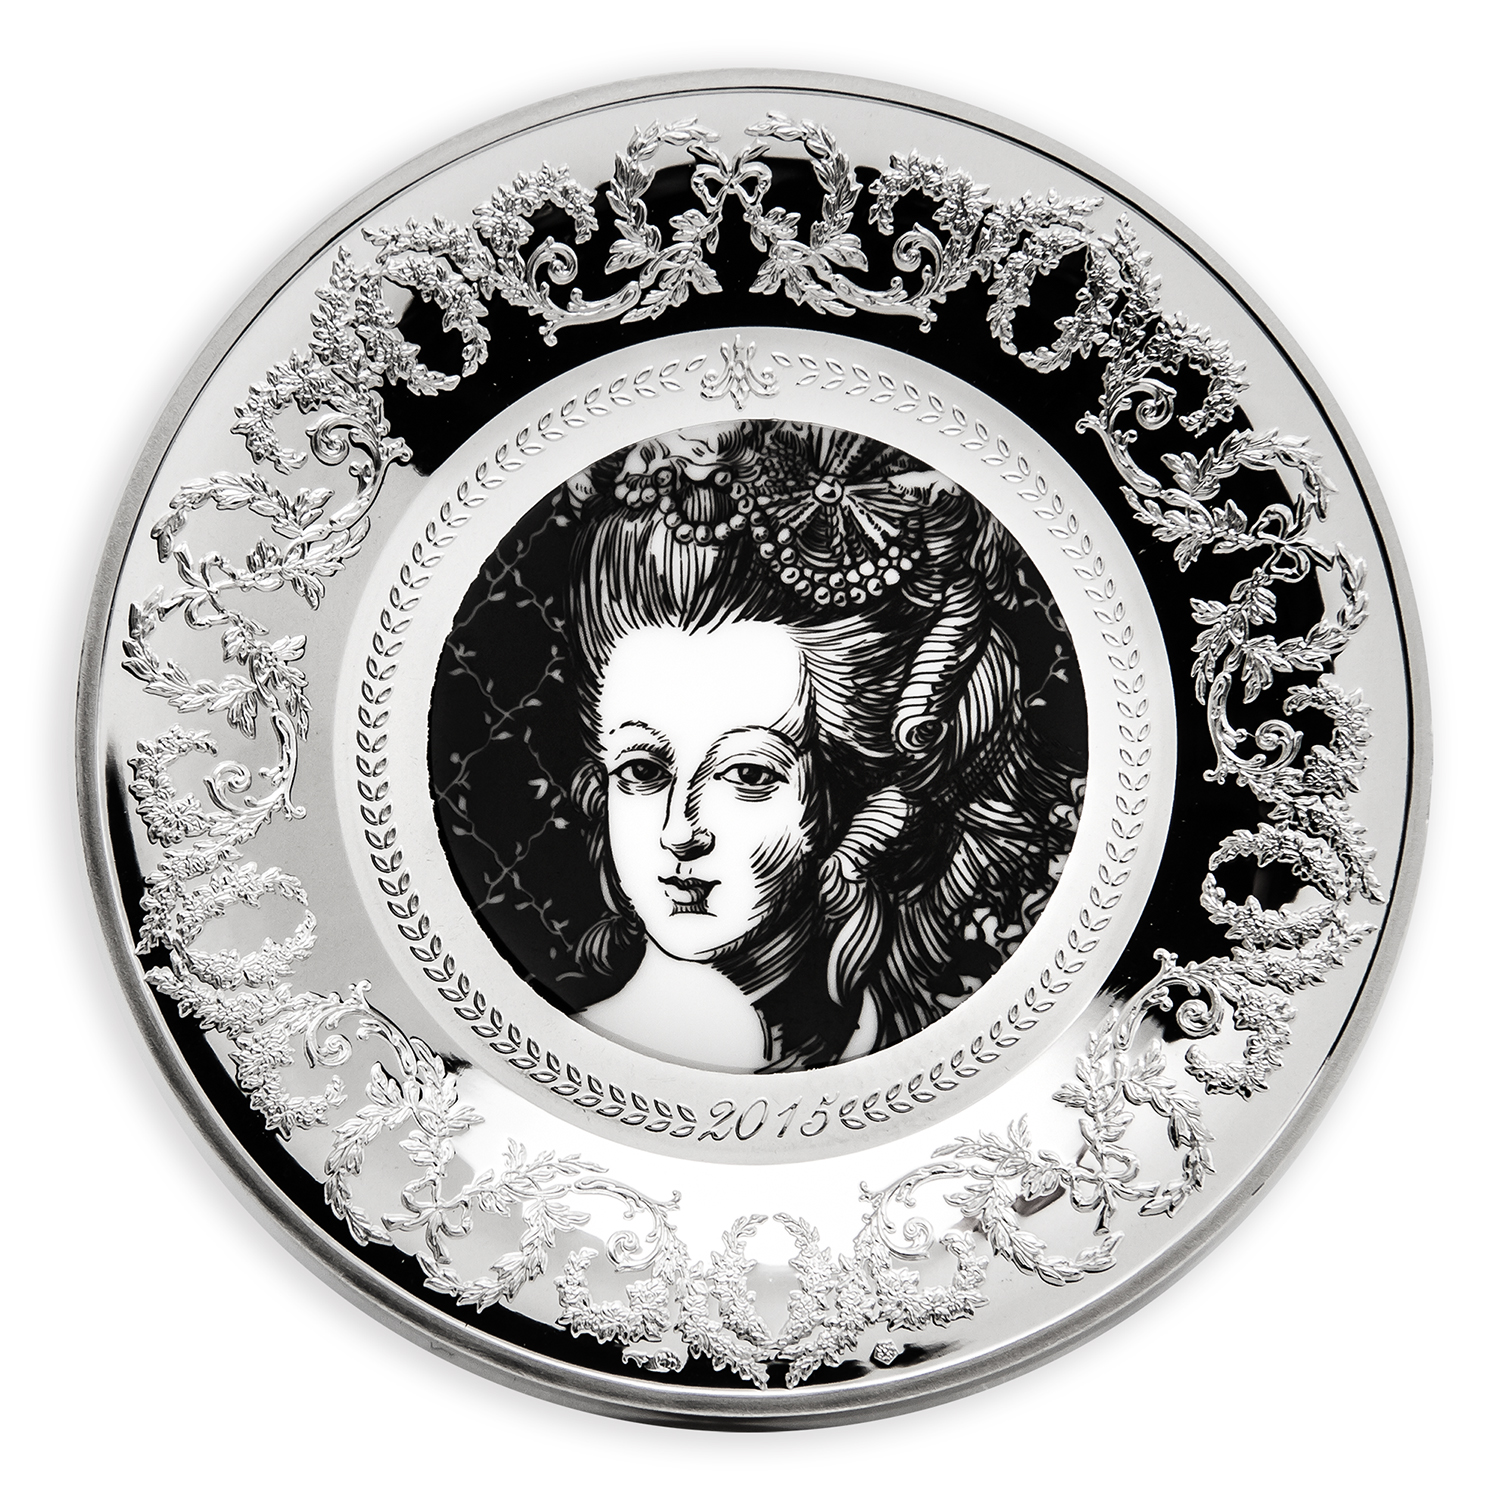 2015 France €10 Silver Excellence Series Proof